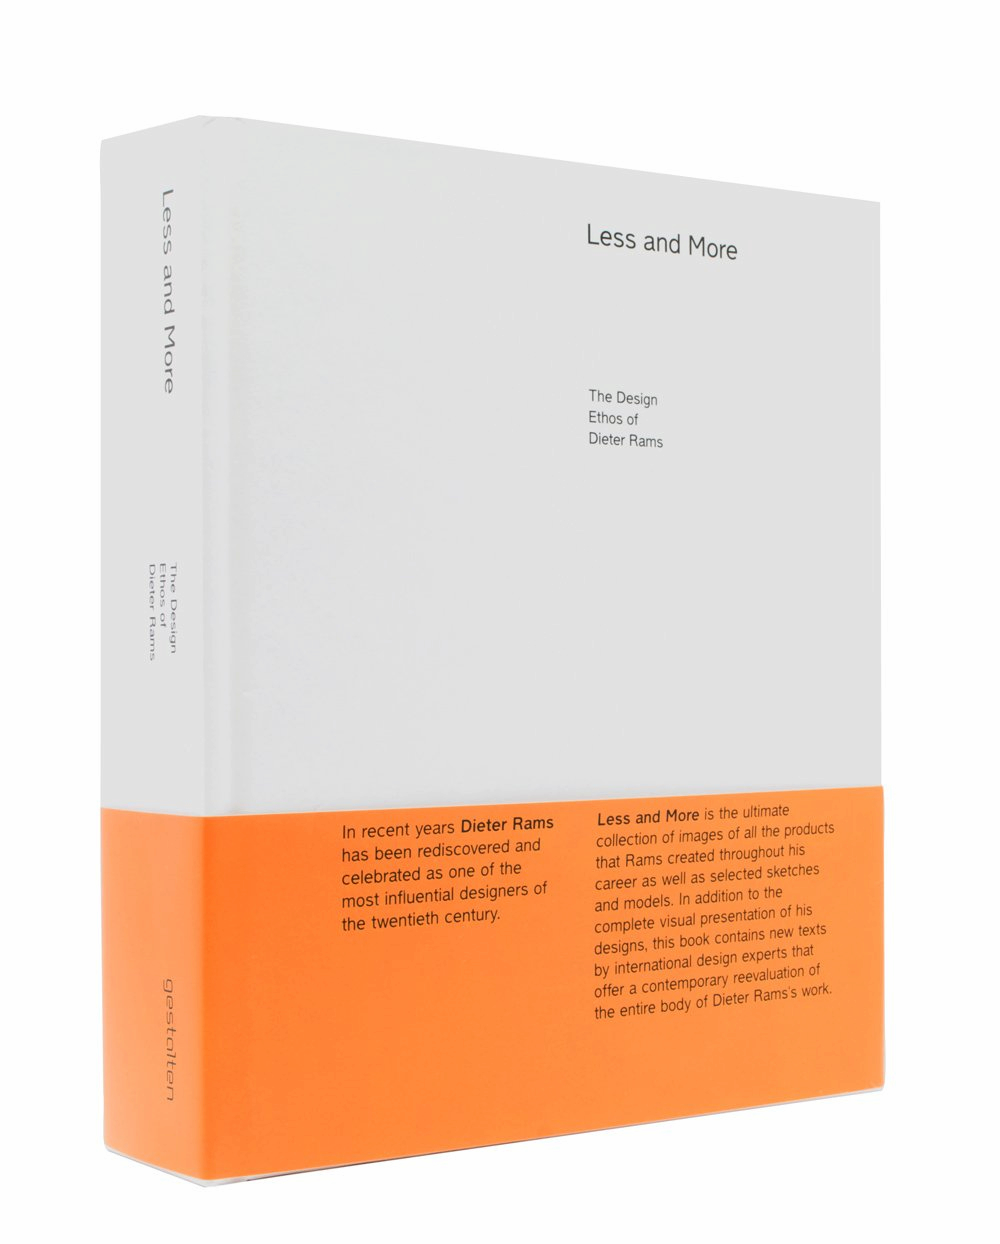 Less and More by Dieter Rams